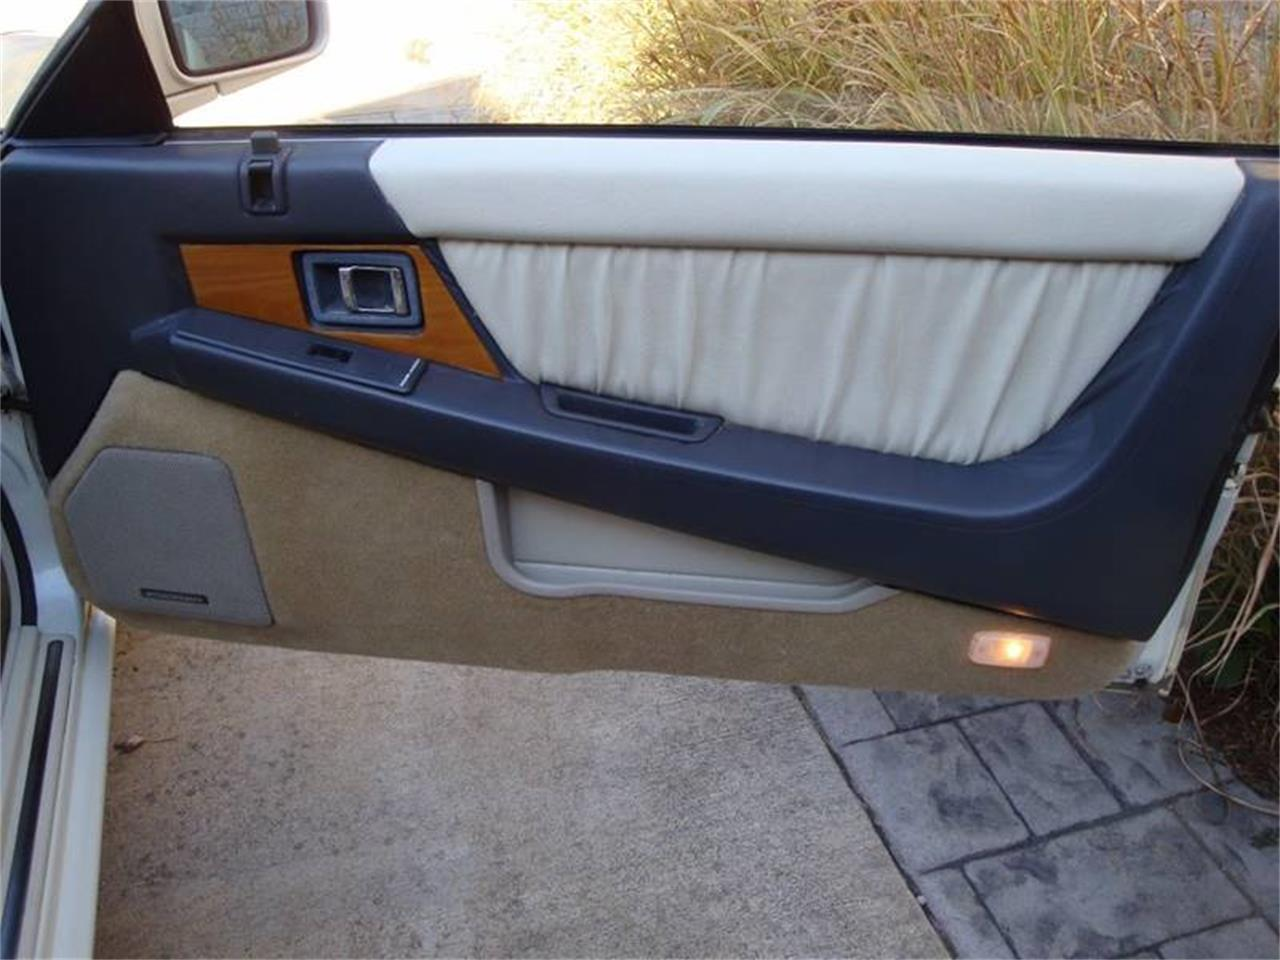 Large Picture of 1991 Infiniti M30 located in St Louis Missouri - $4,900.00 - JX2H